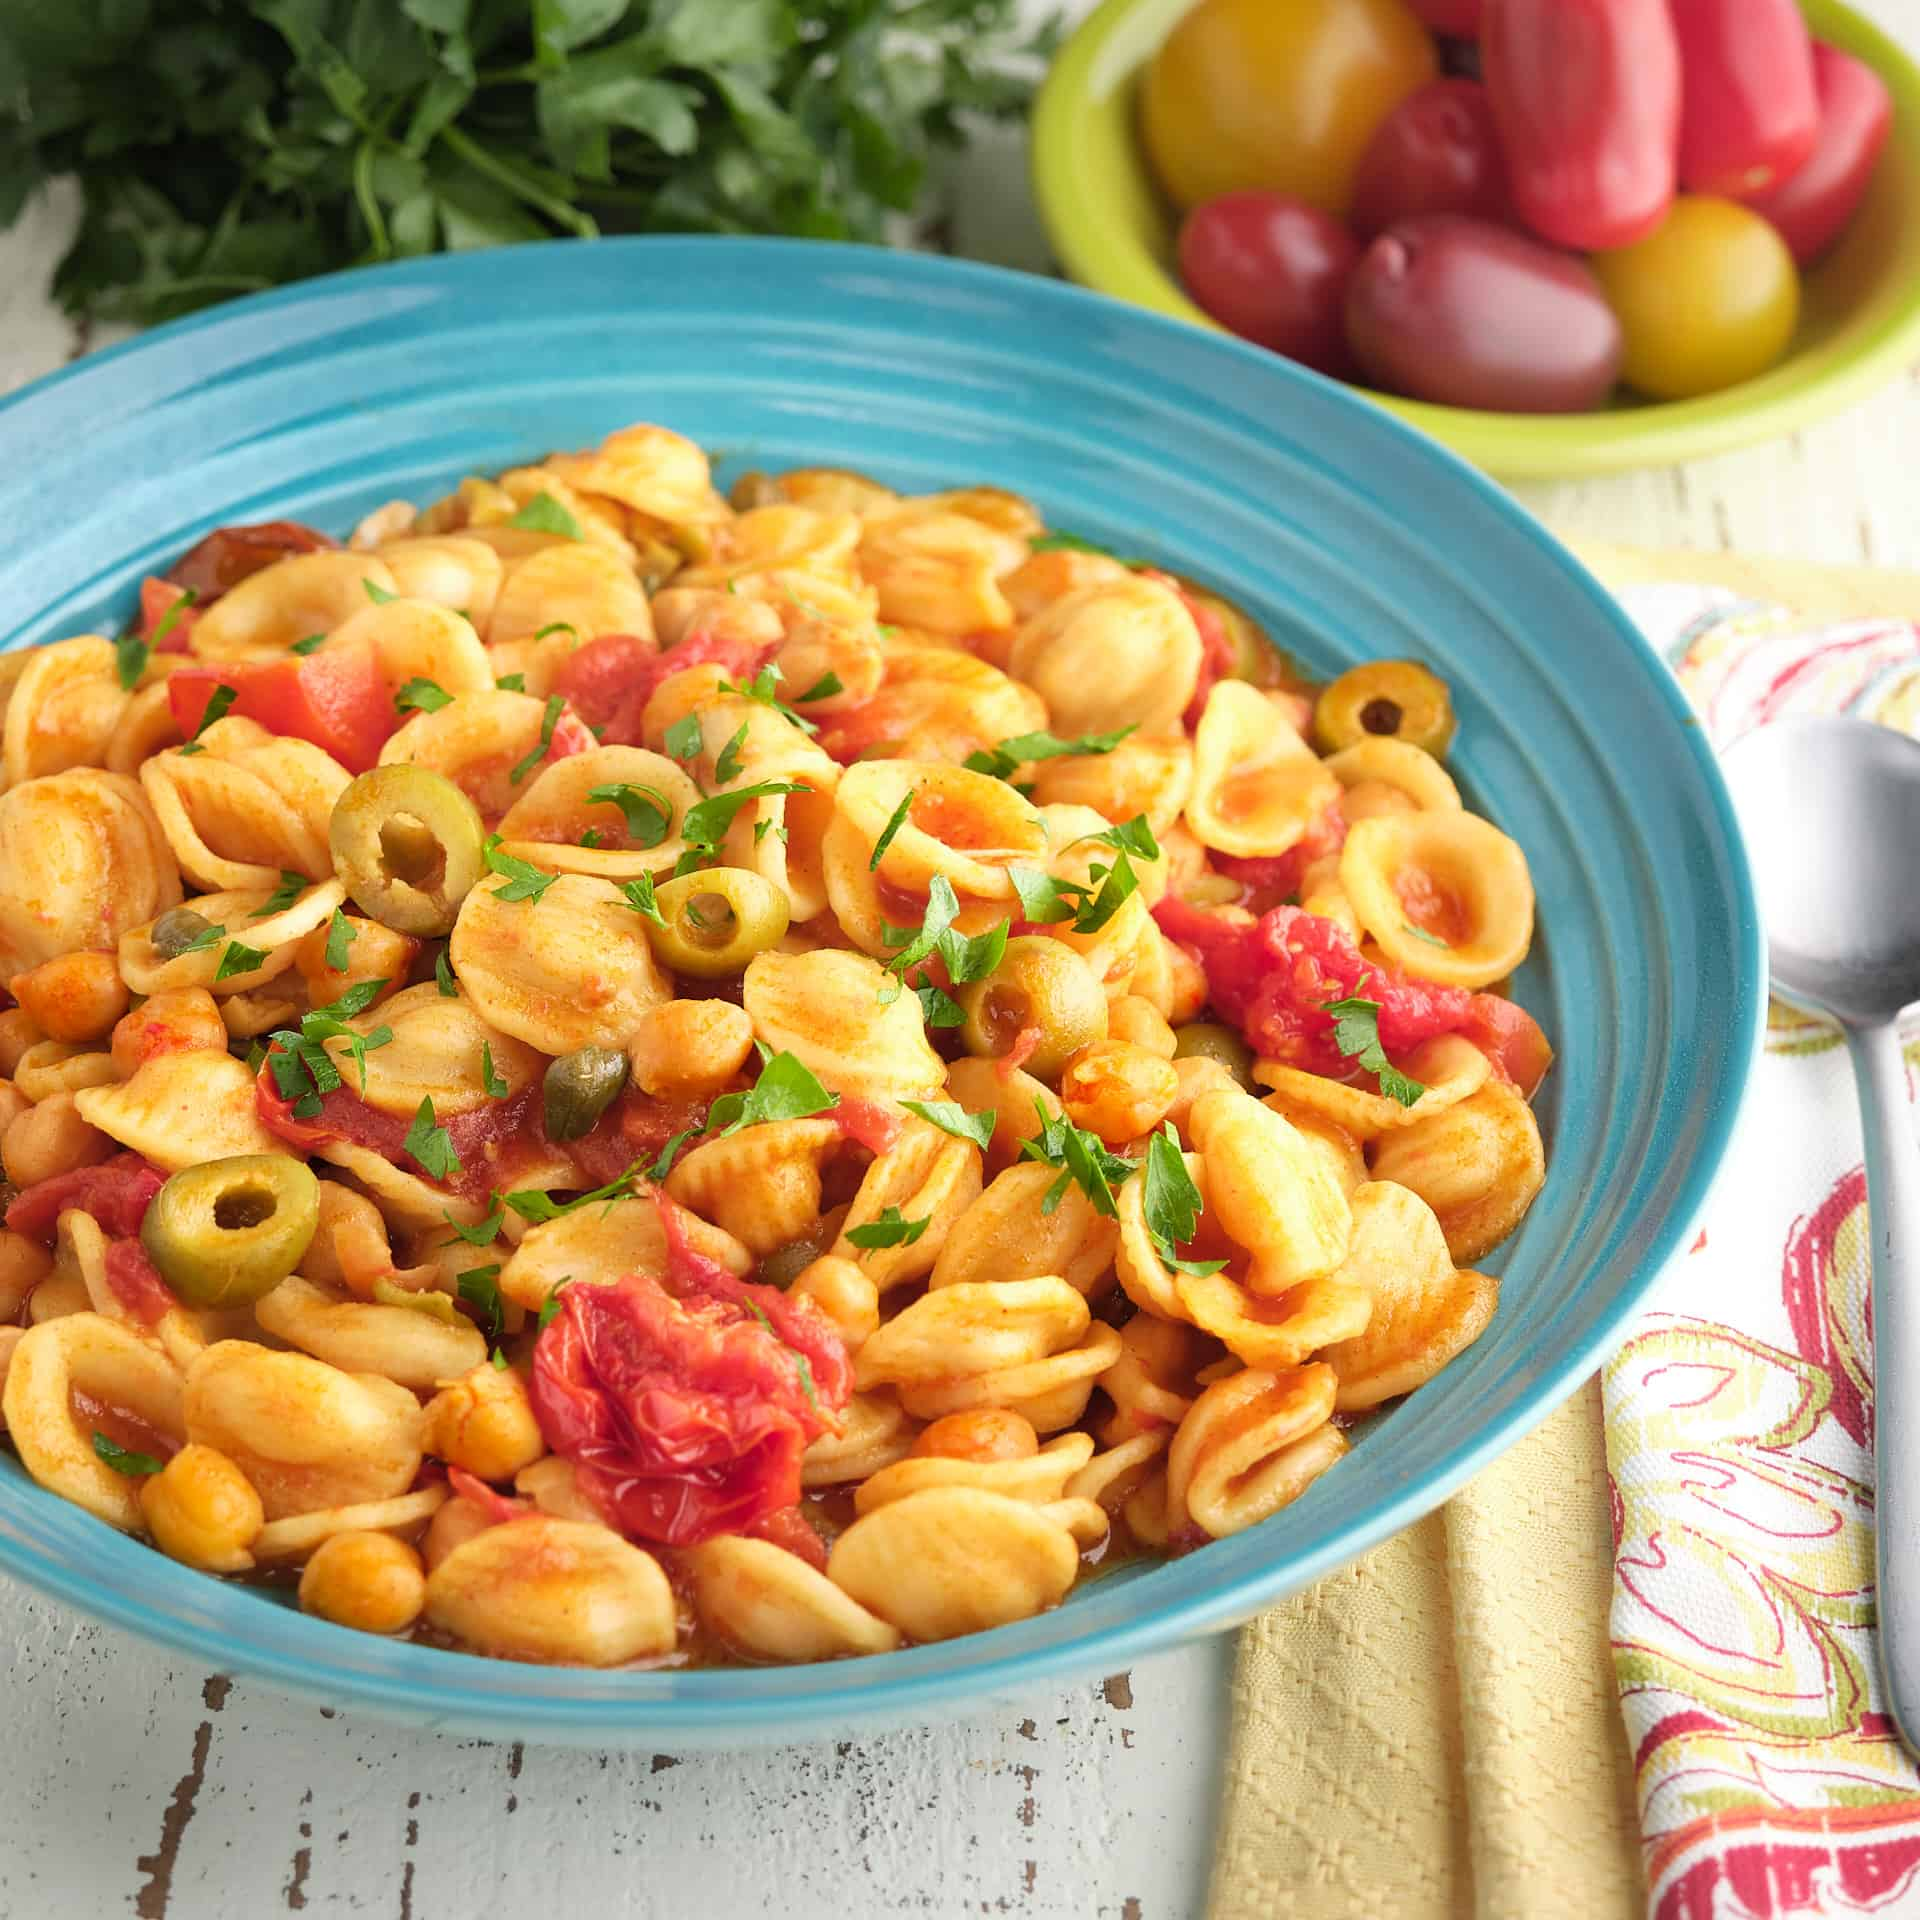 A bowl of chickpea puttanesca with orecchiette, with tomatoes, parsley, napkins, and a spoon